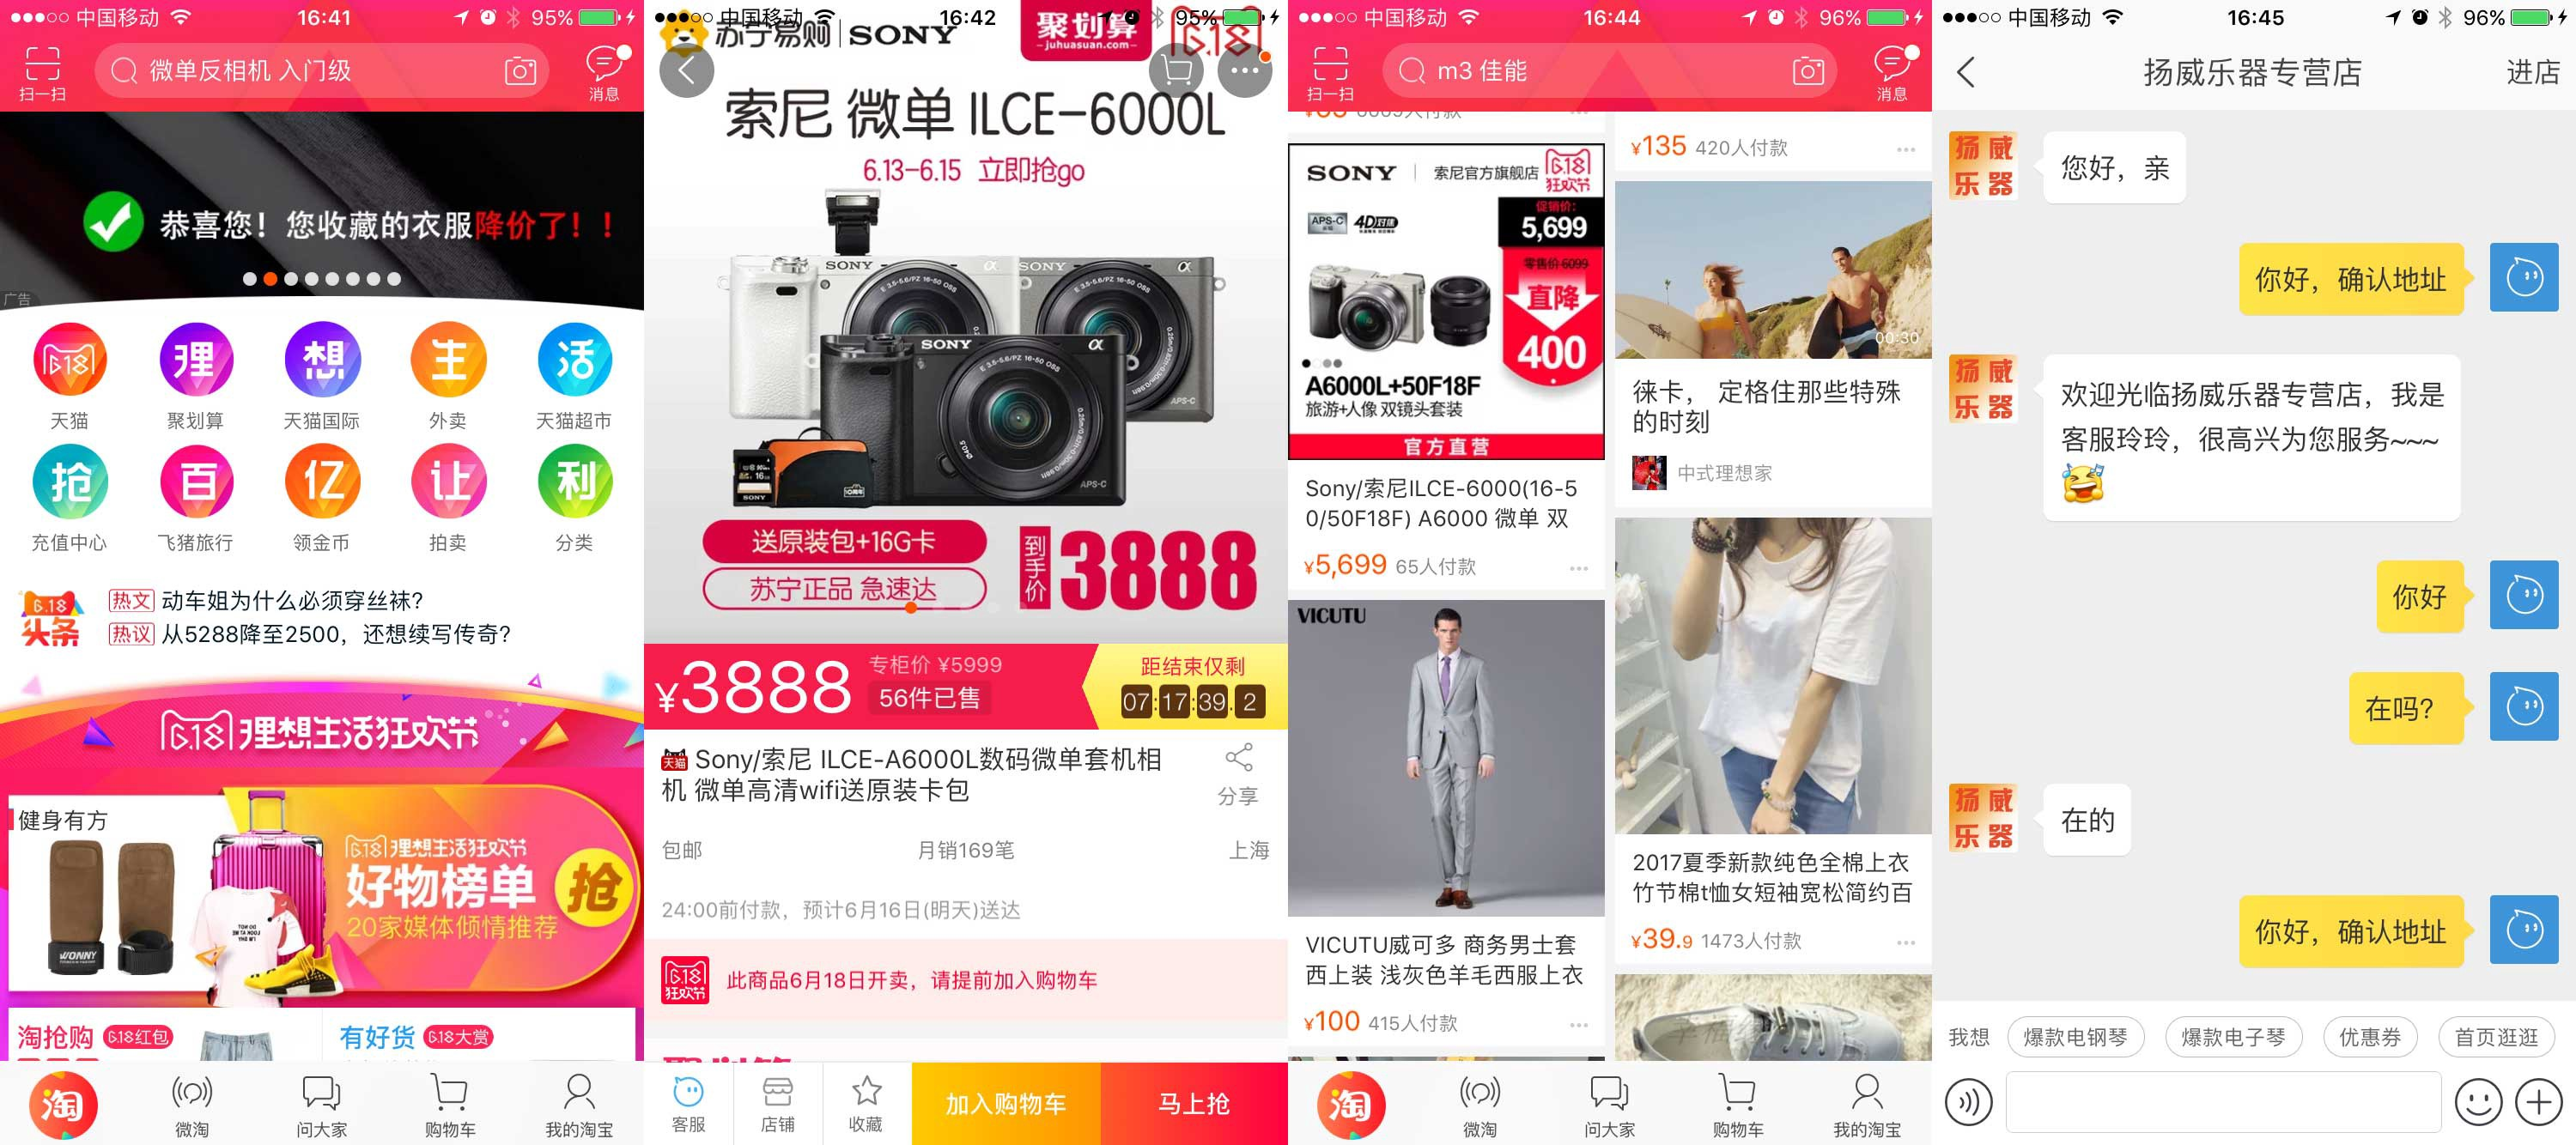 31/31: Taobao, Chinese Online Shopping Giant - Shanghai